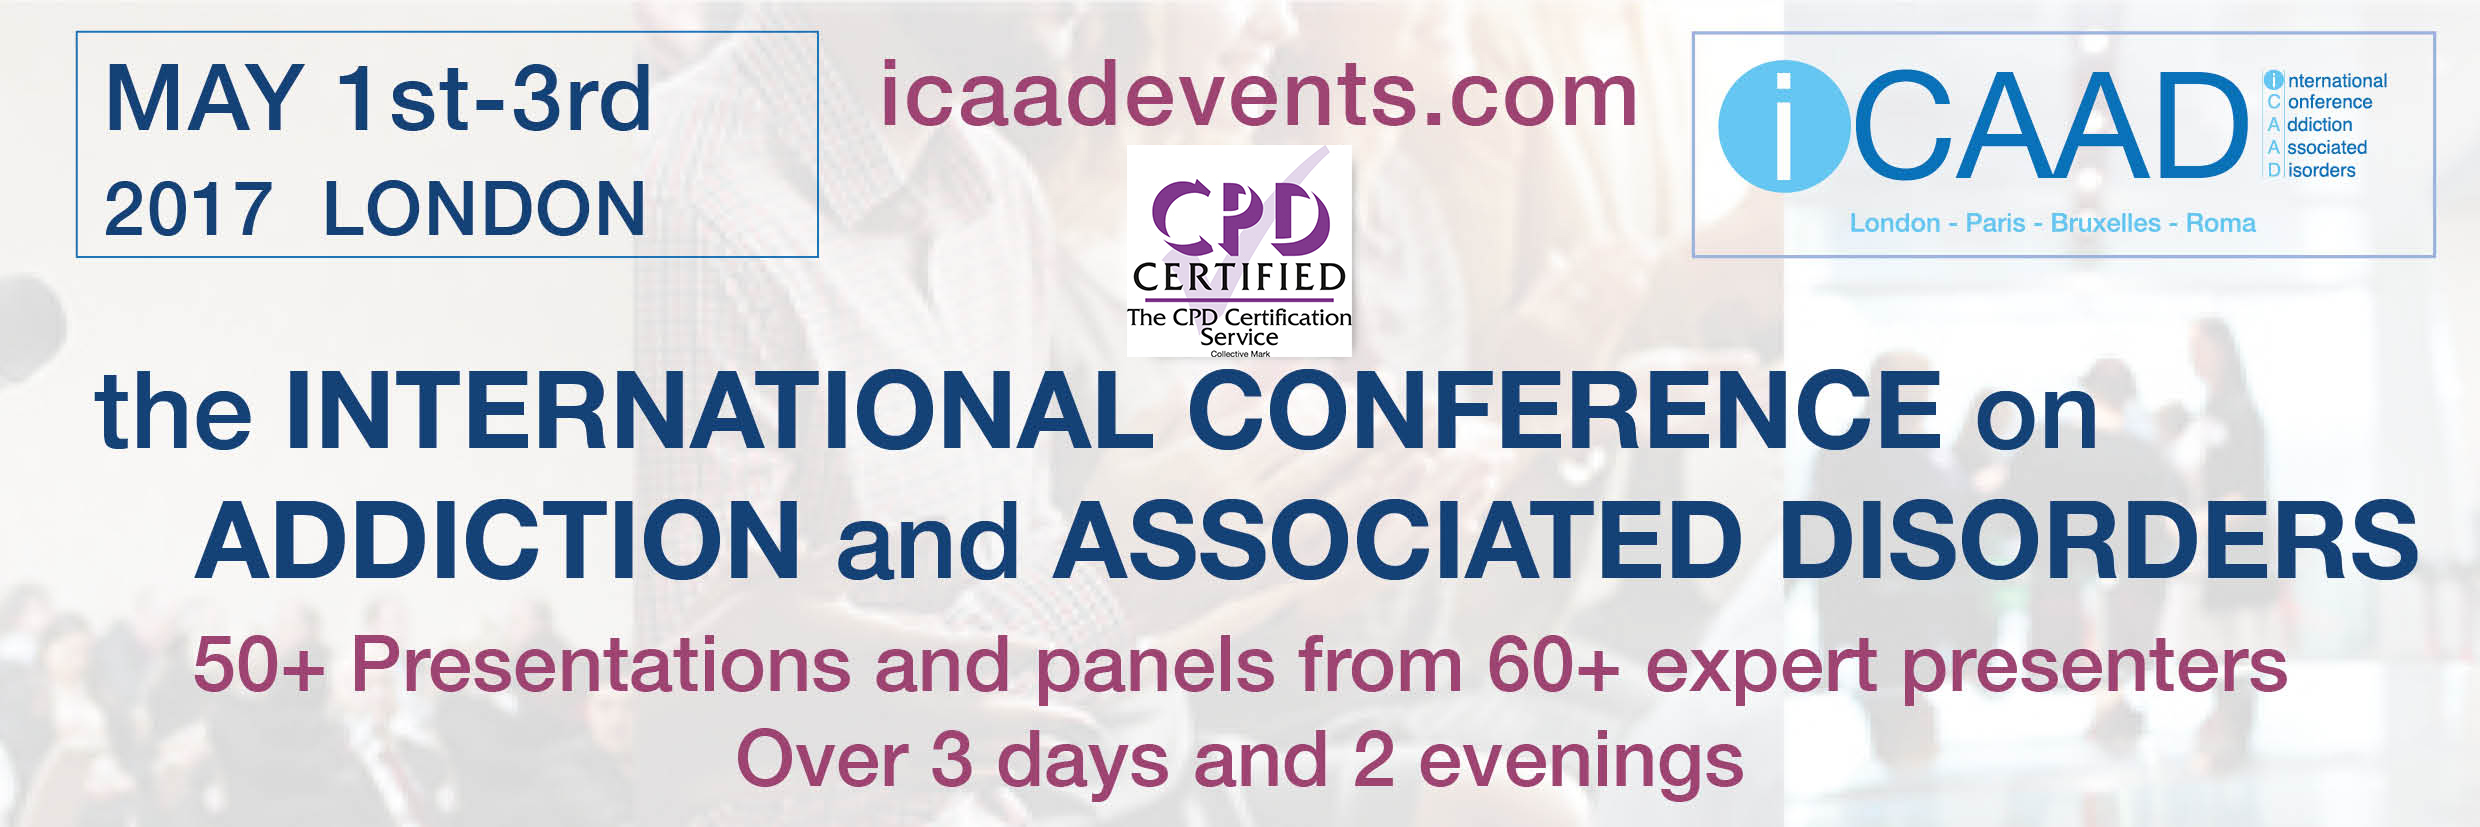 Icaad London 30 Hours Of Cpd And A Film Festival